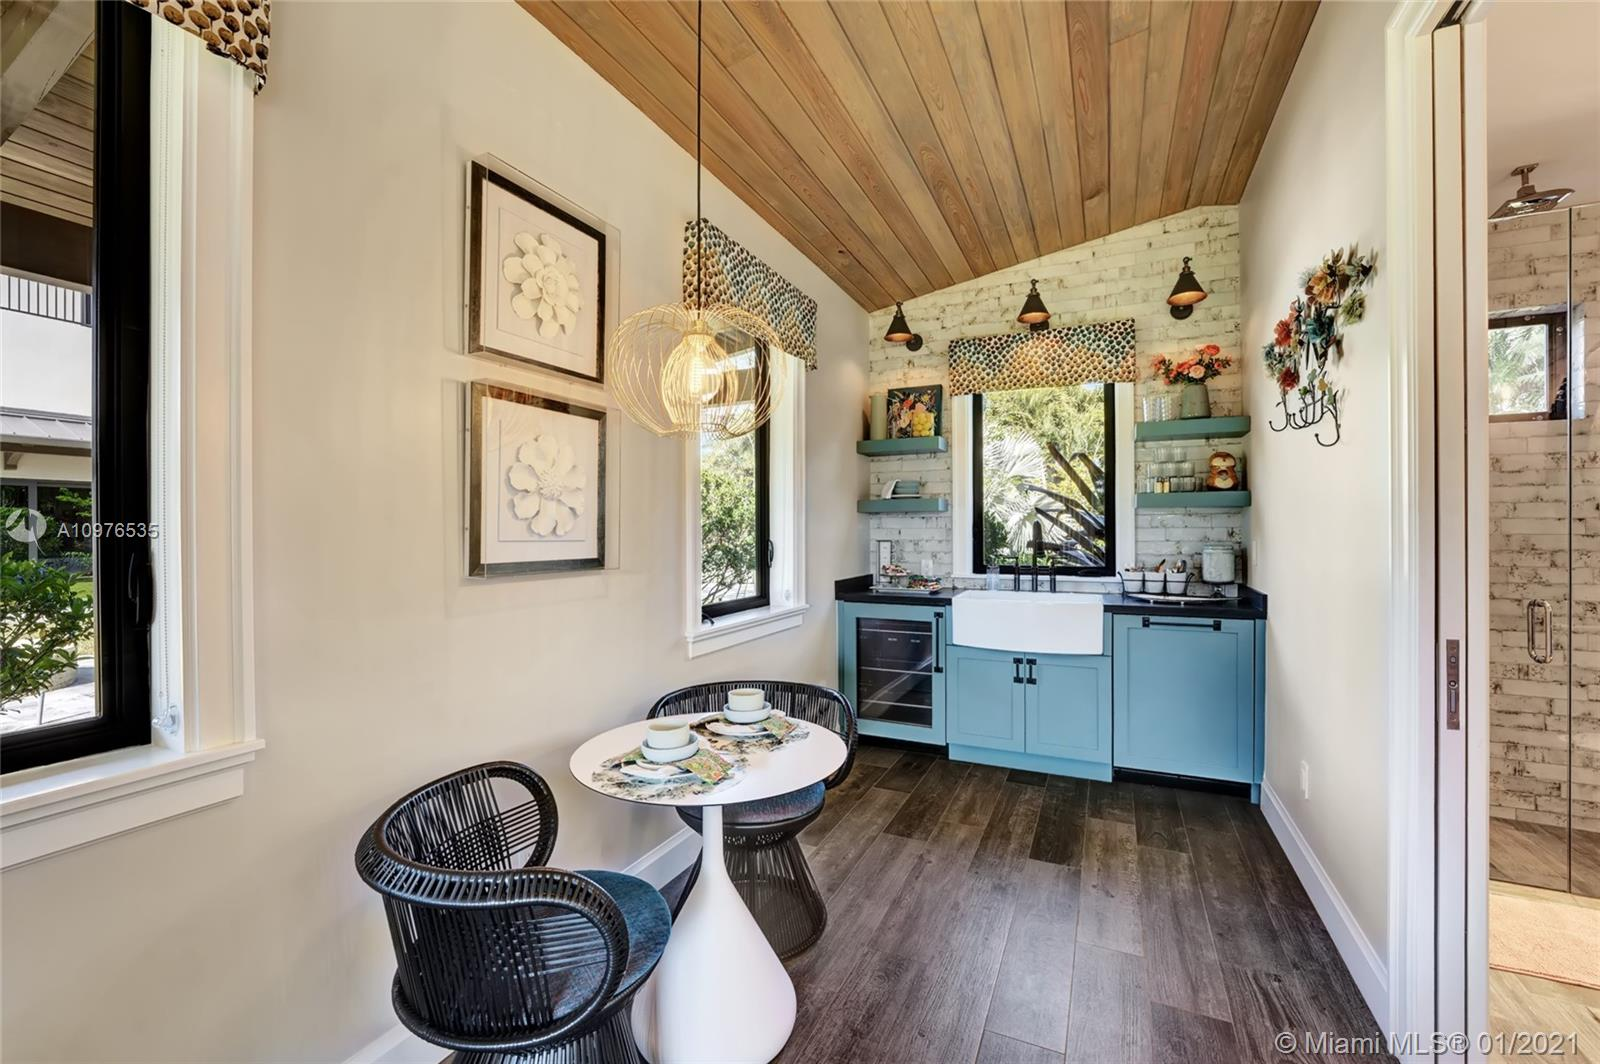 This lovely kitchen area provides additional charm in this delightful guest house! Porcelain floors.